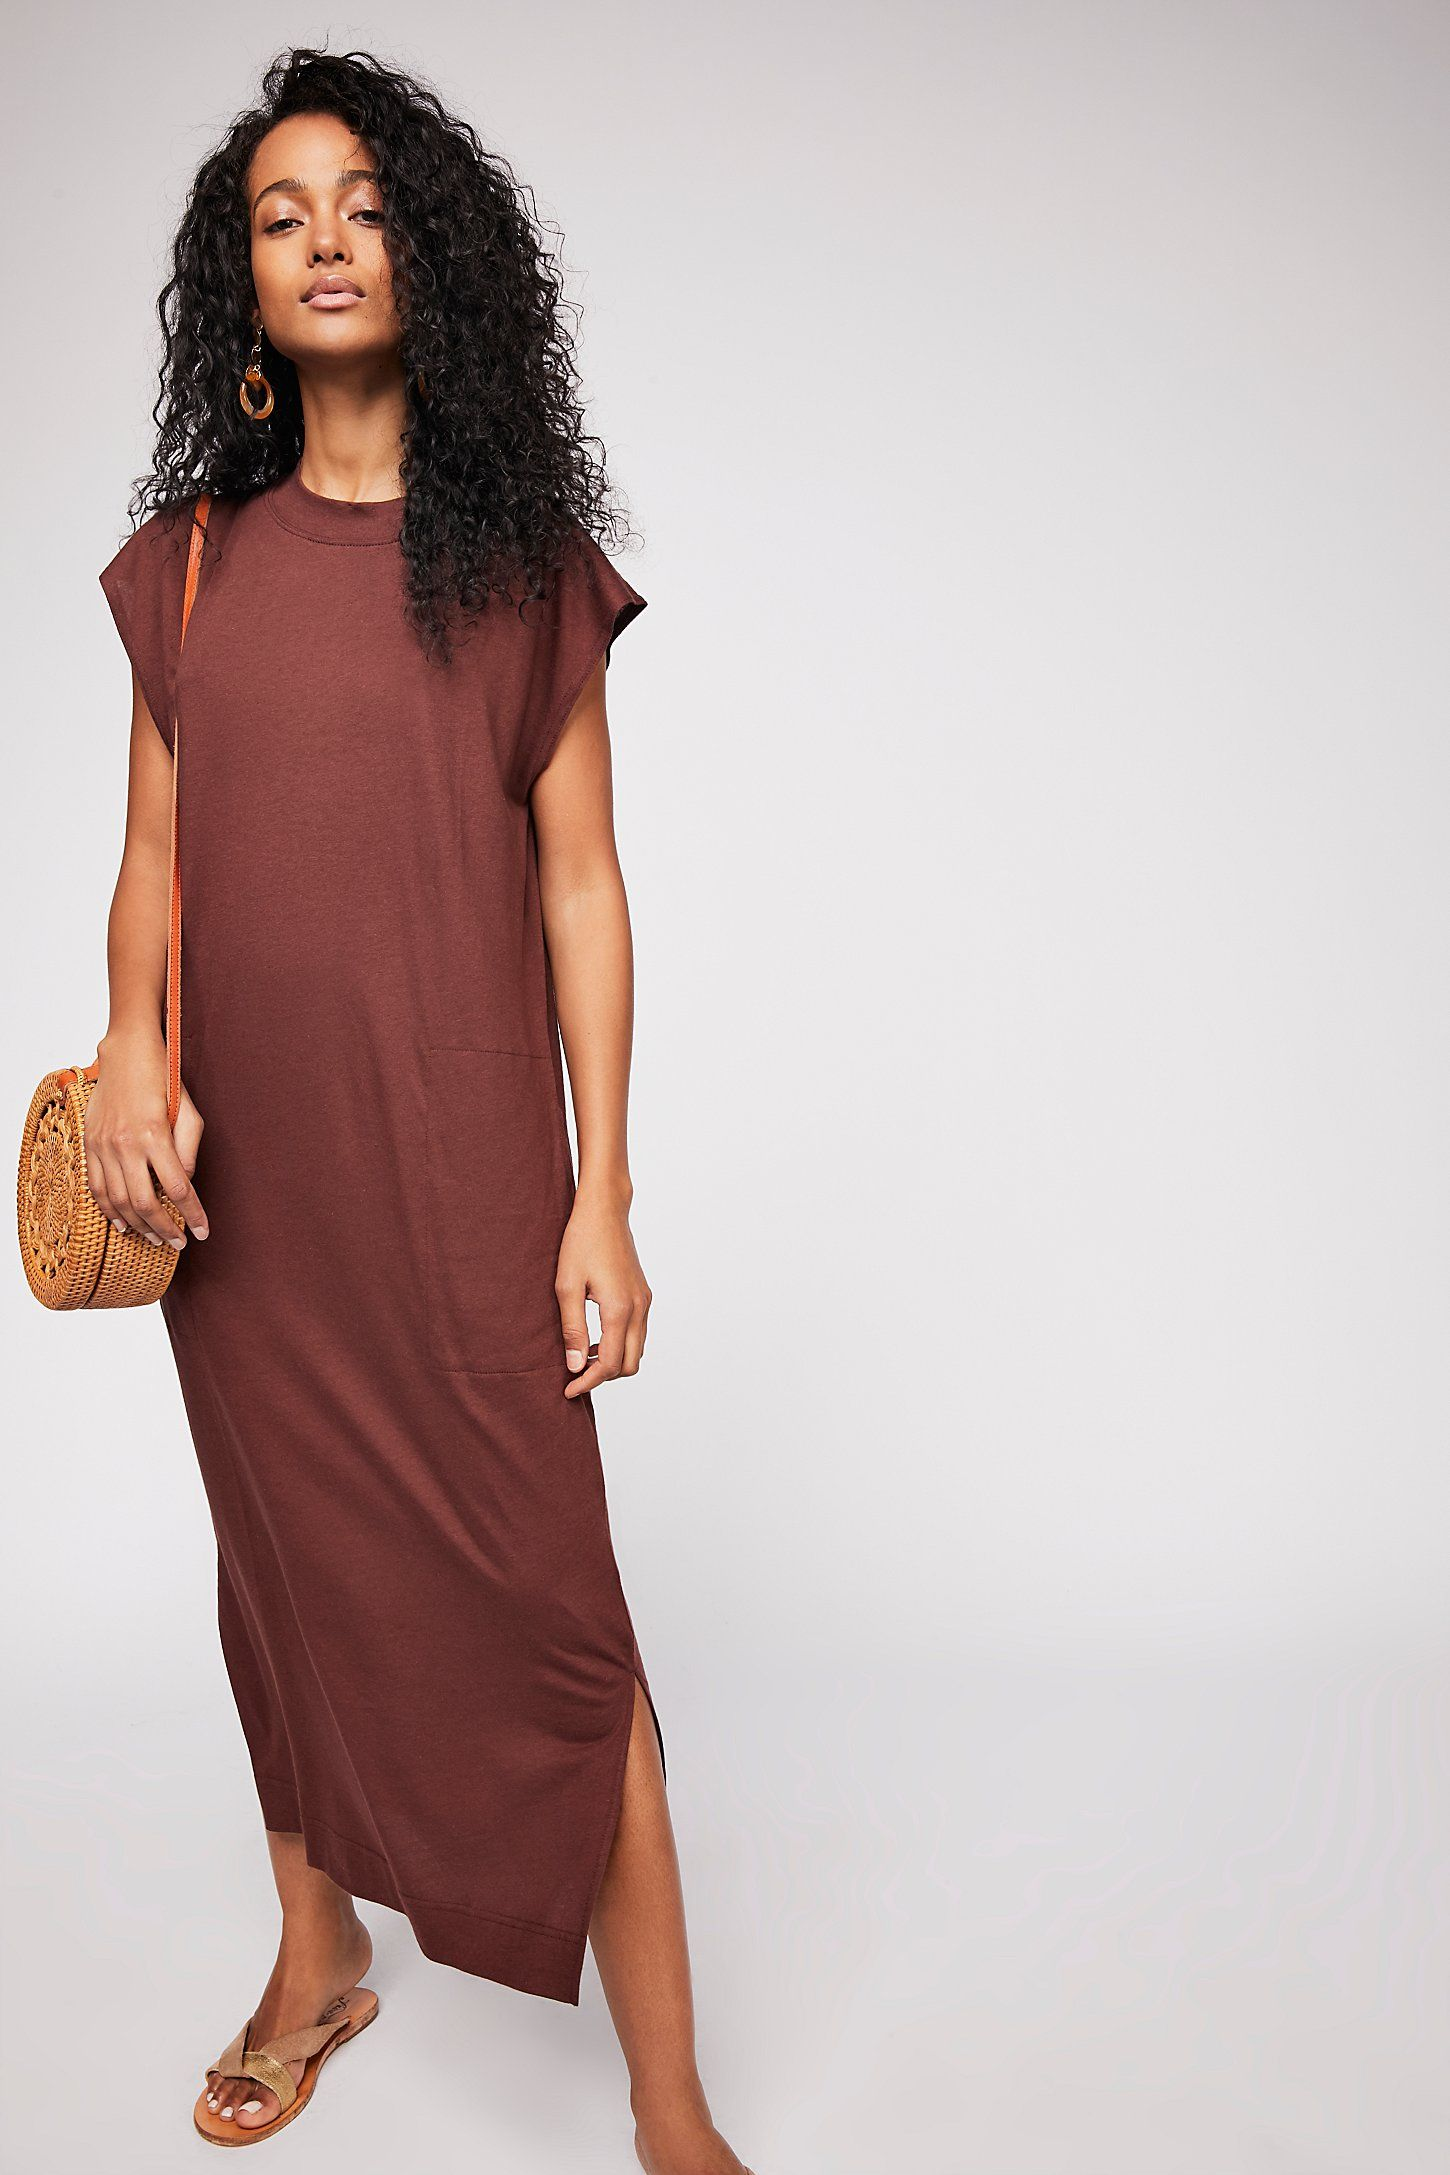 All day long midi tshirt dress in dresses pinterest